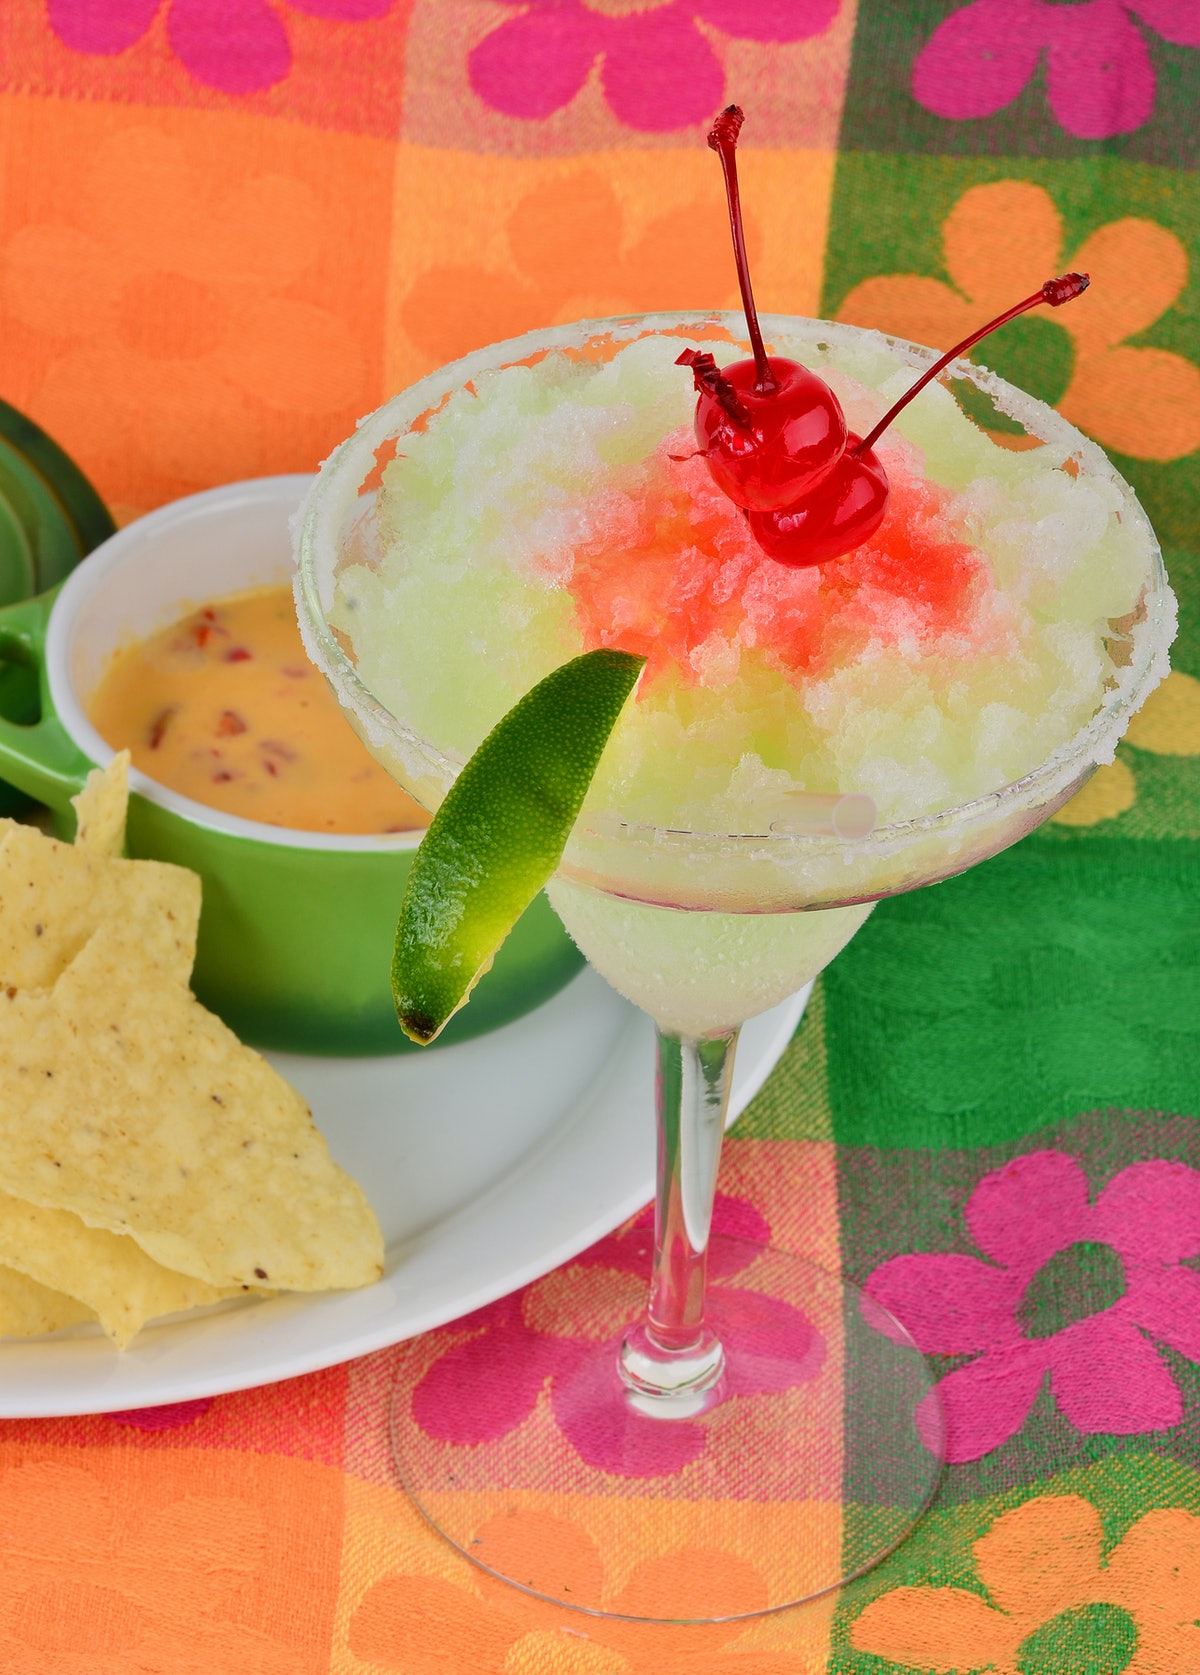 A margarita and queso makes a great cocktail and cheese pairing.